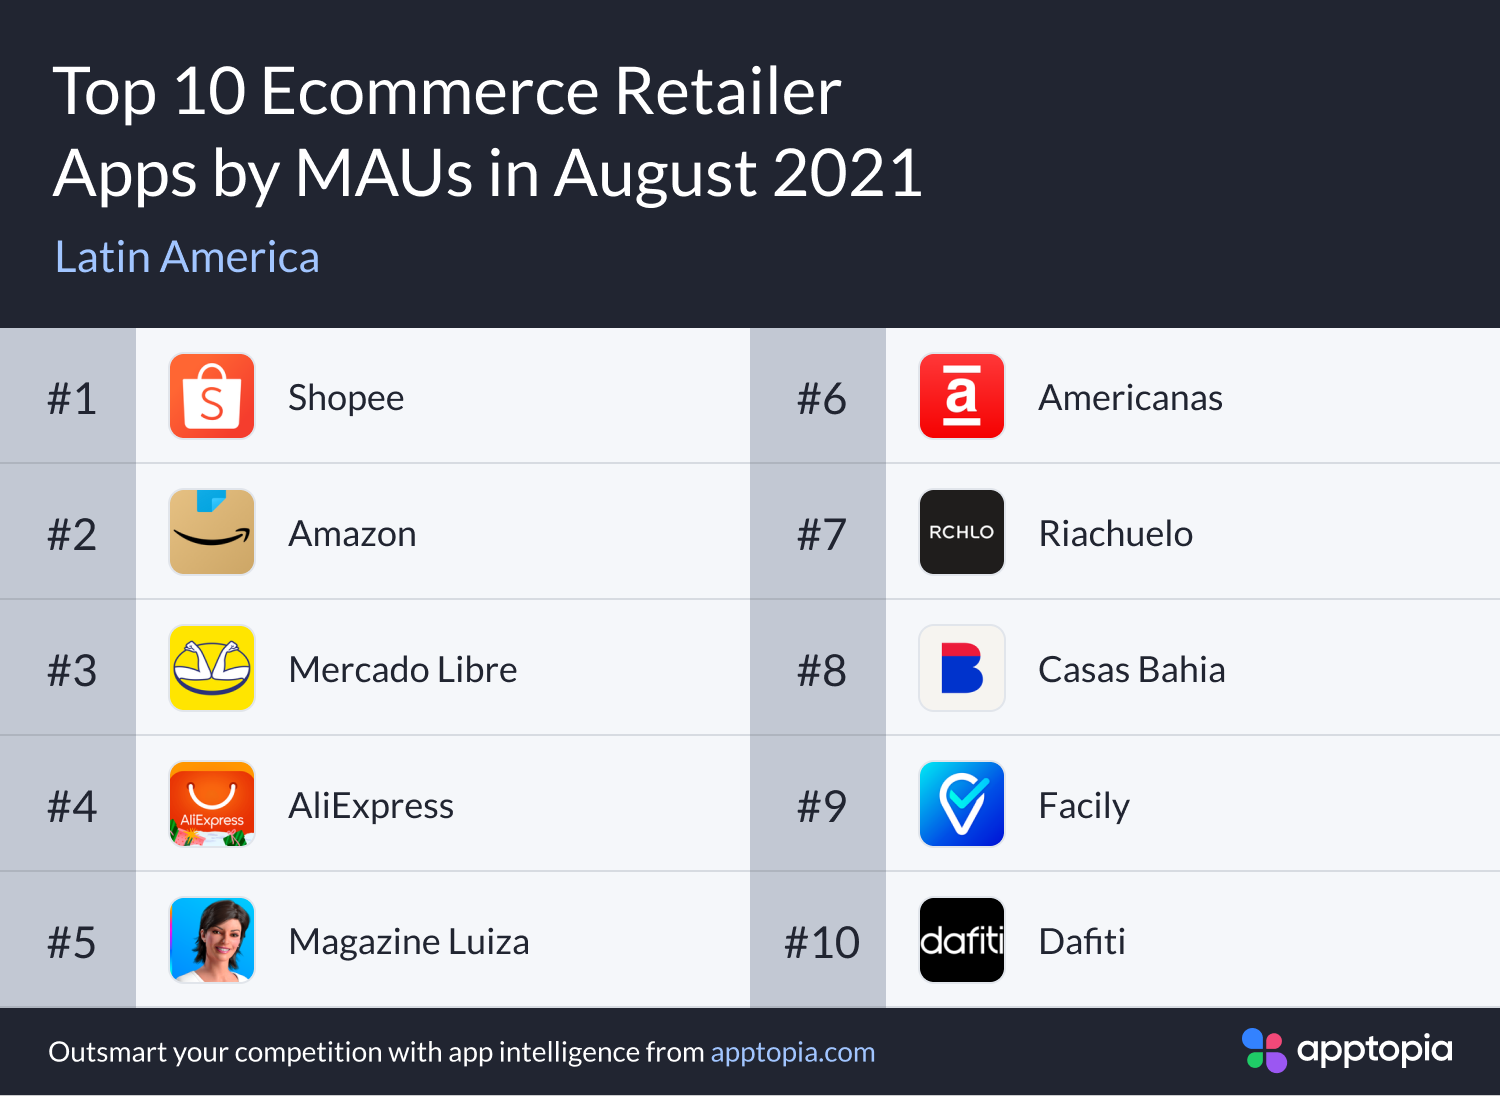 Top latam ecommerce apps by monthly active users